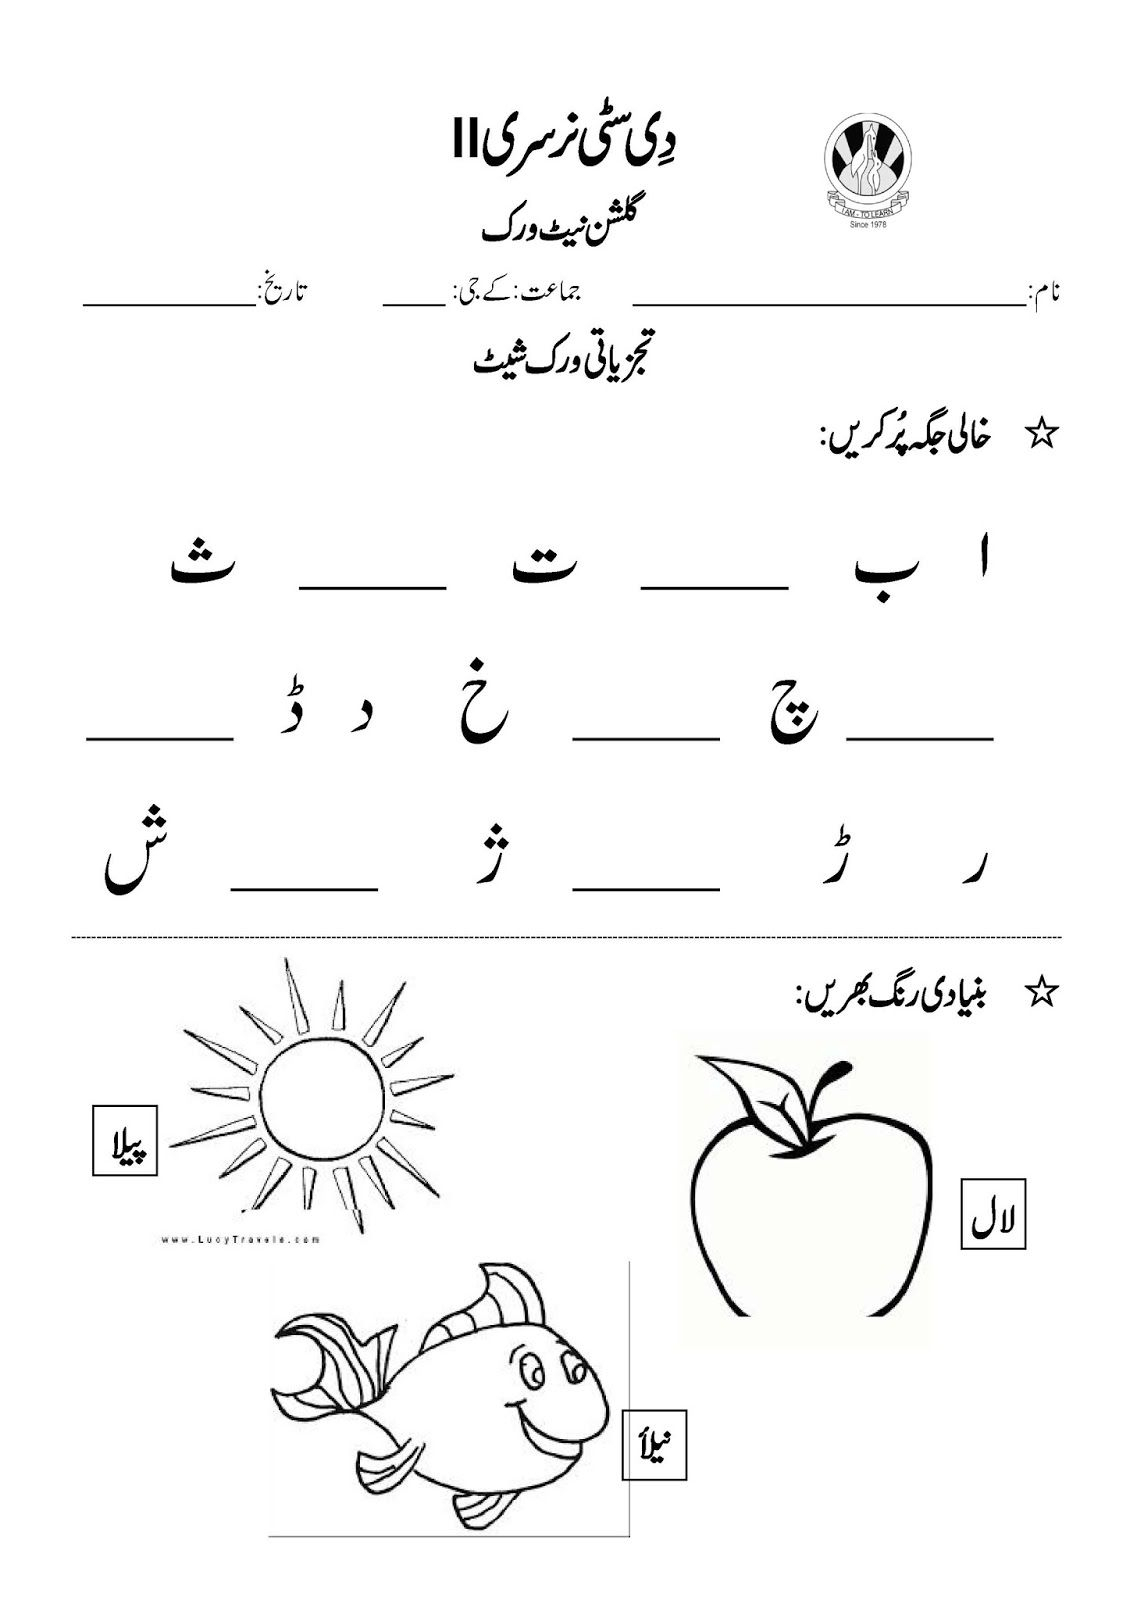 Urdu Letters Tracing Worksheet | Printable Worksheets And